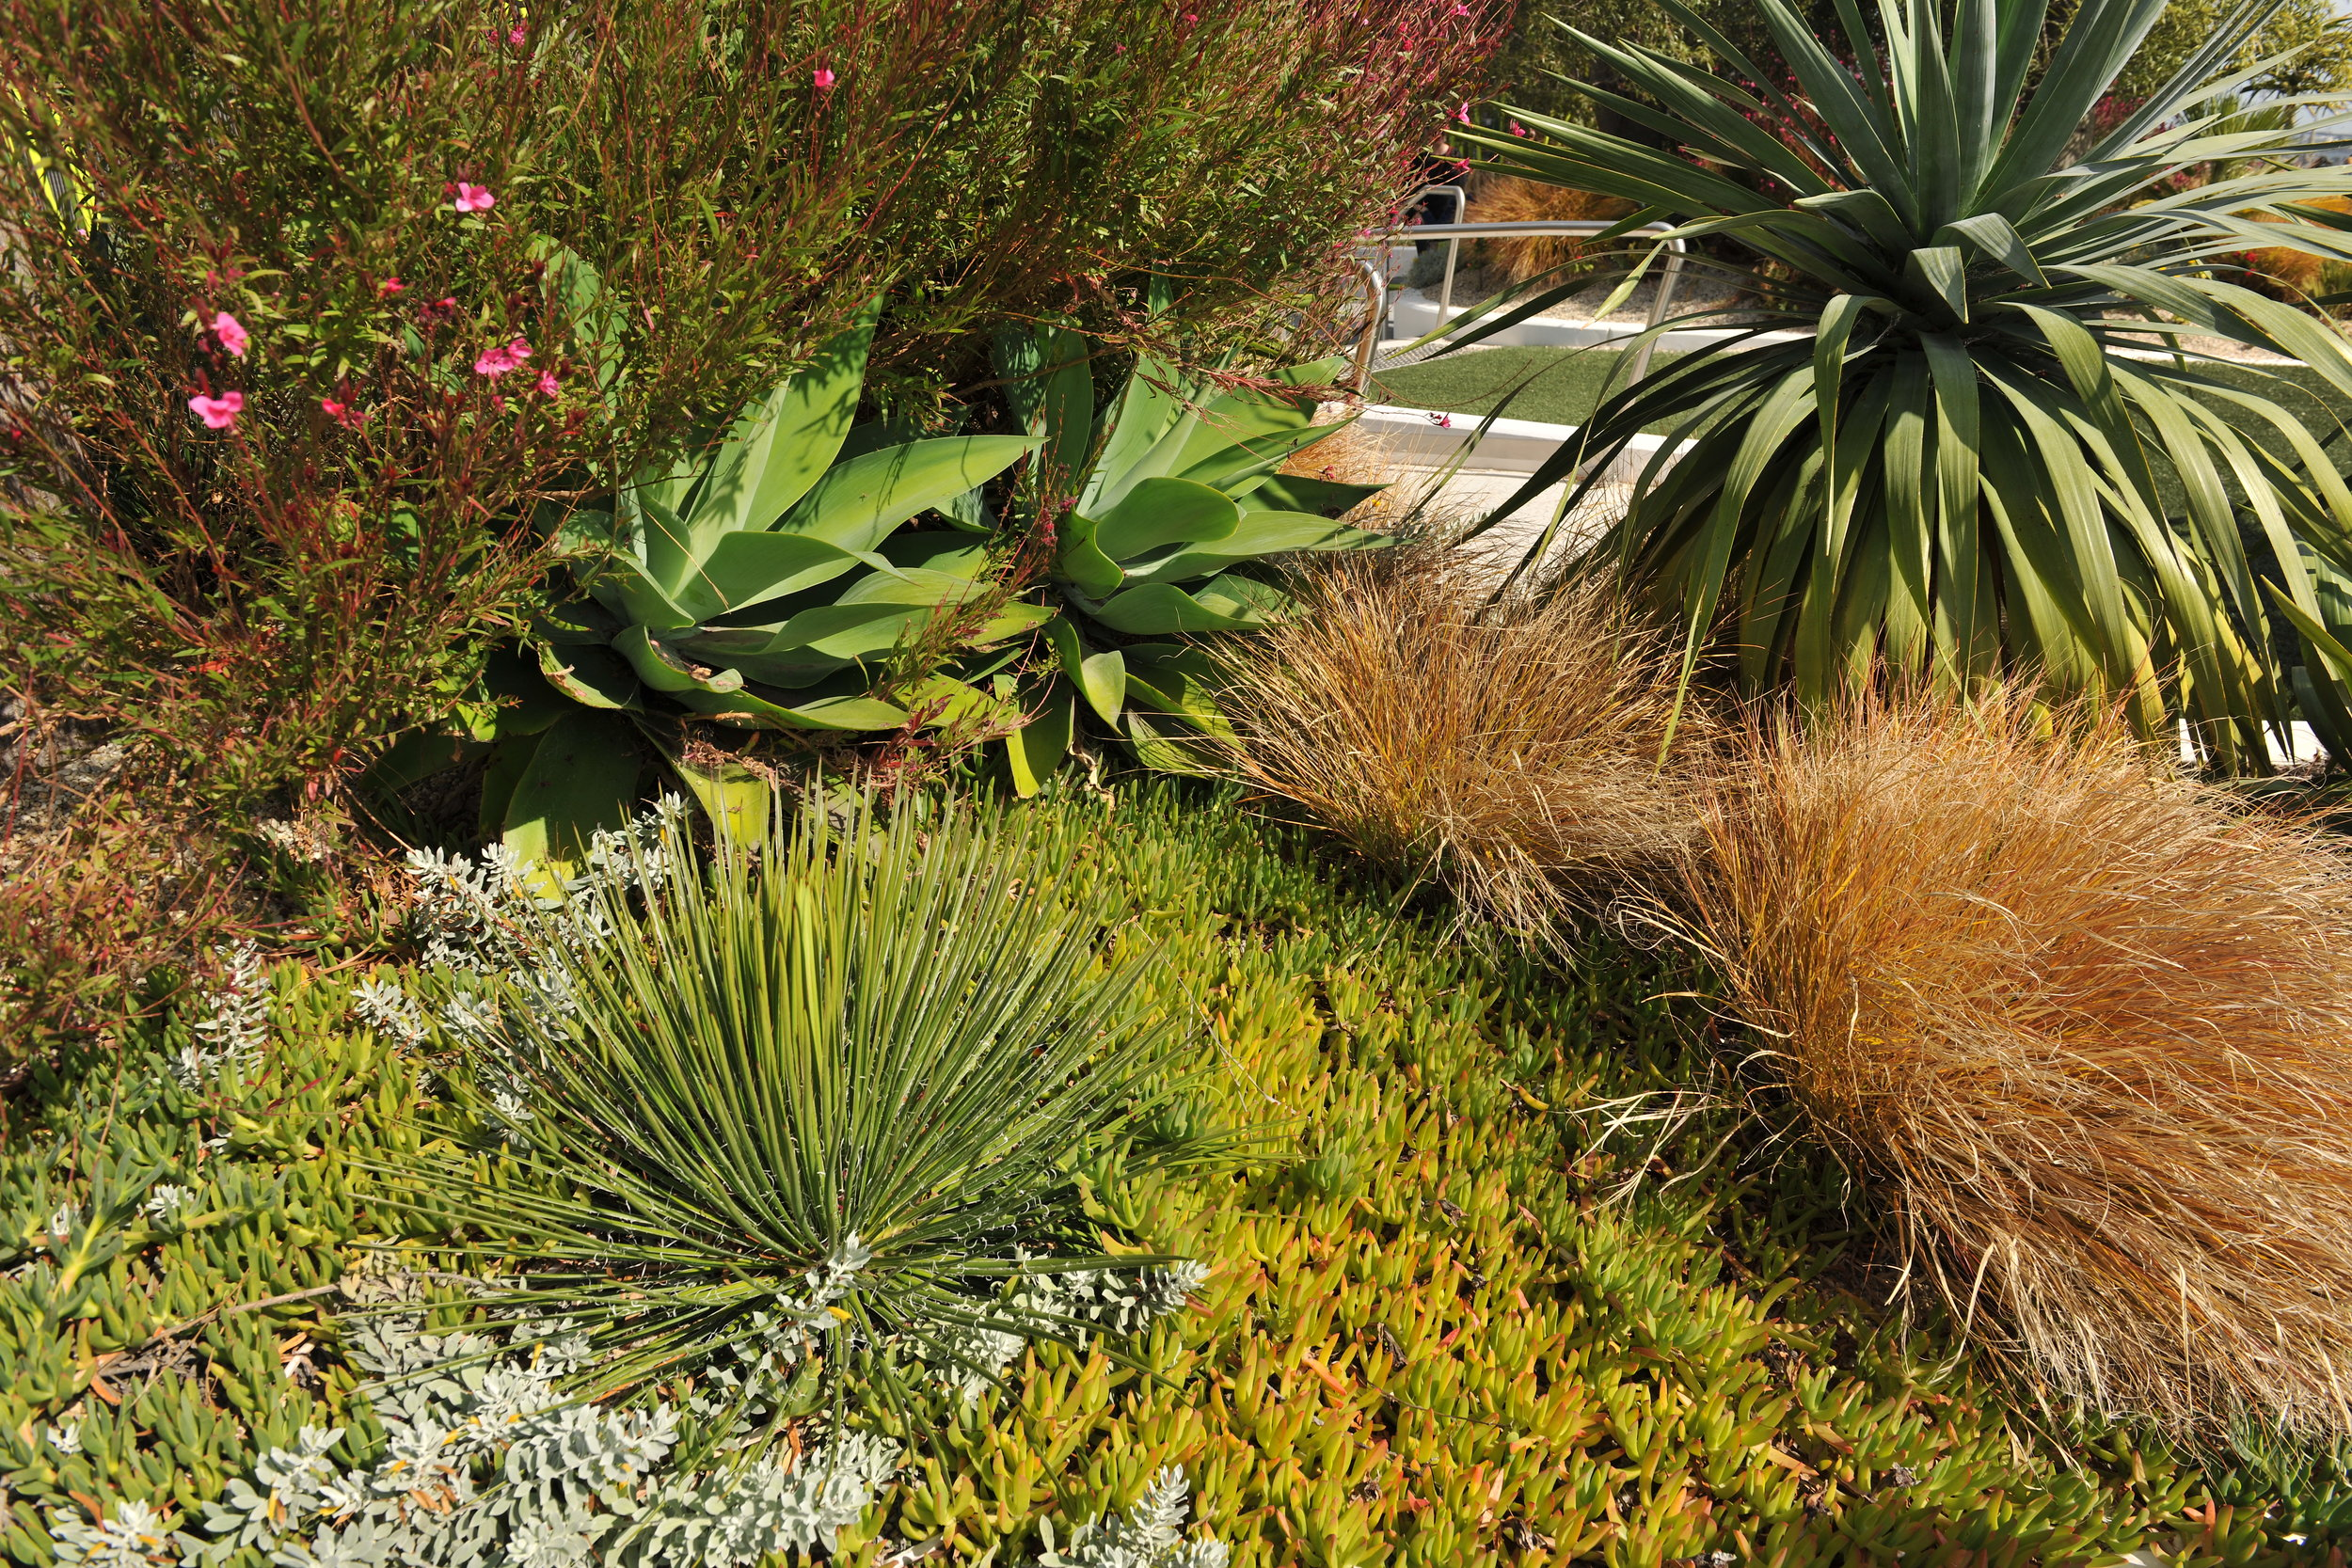 A profusion of hardy succulents and grasses compete for space. The long-lived Agave geminiflora (foreground) will grow to form a large, tall flowering highlight. Photo credit: Michael Wright